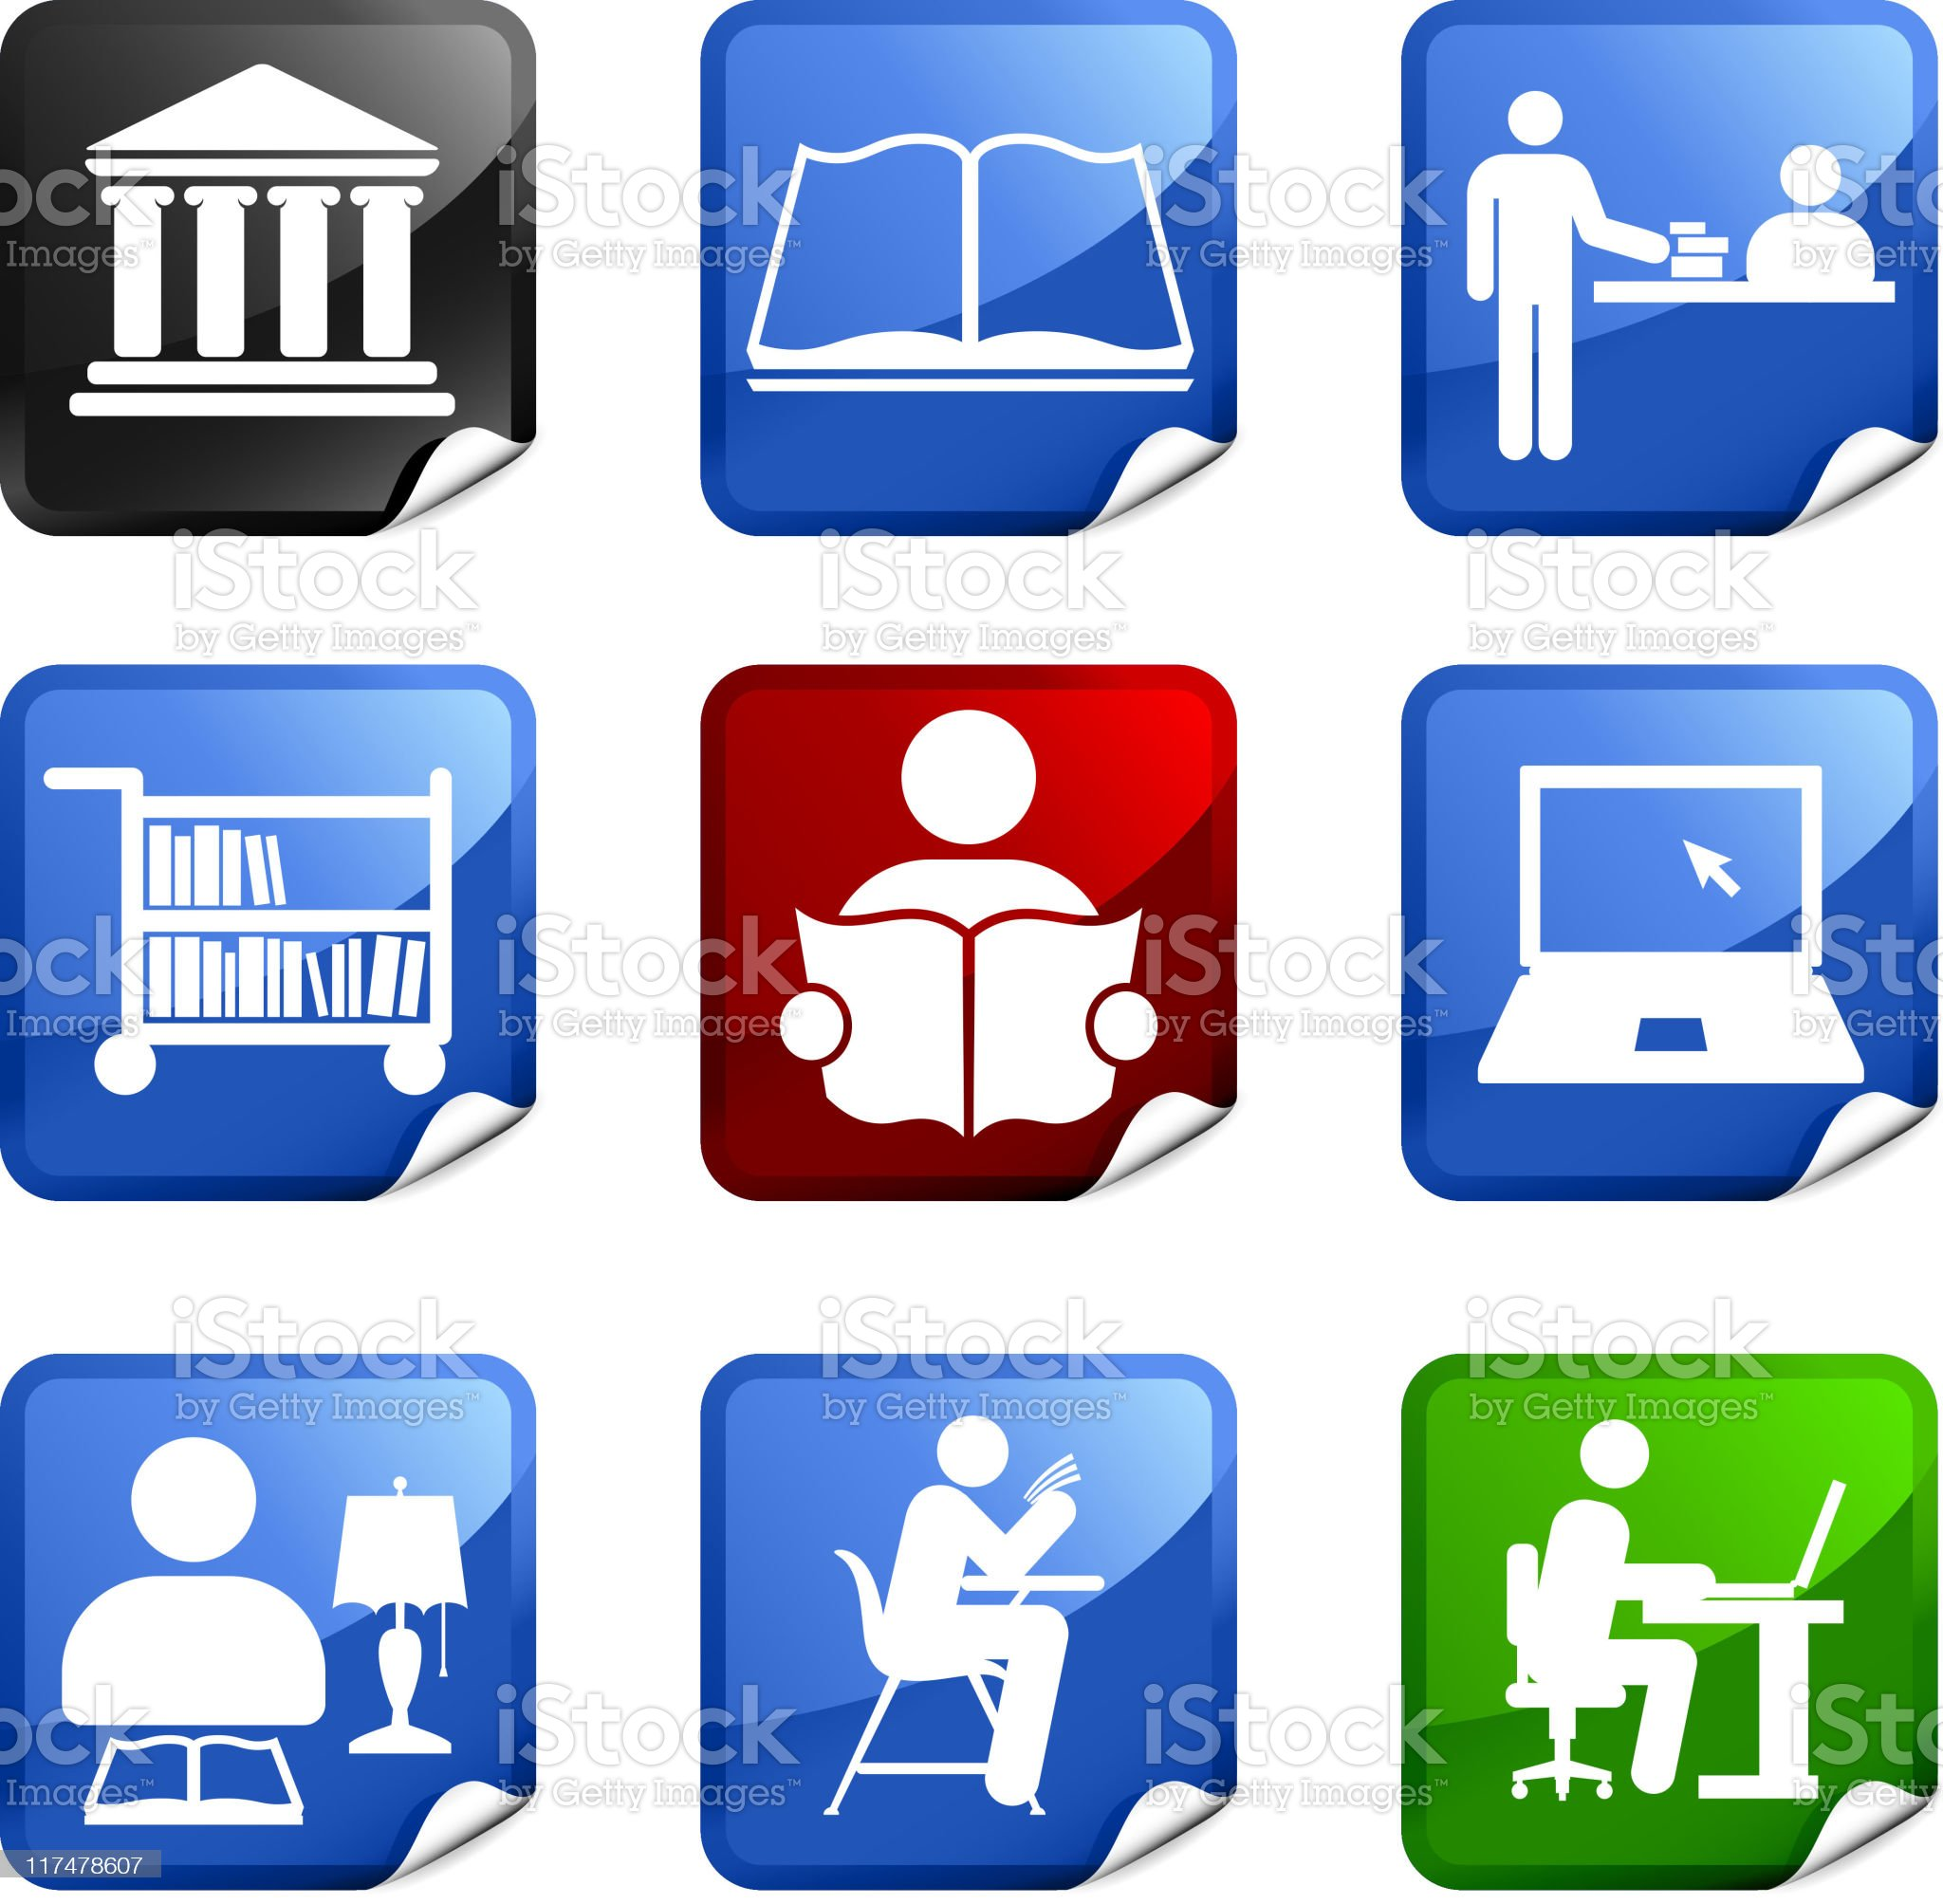 school library nine royalty free vector icon set royalty-free stock vector art